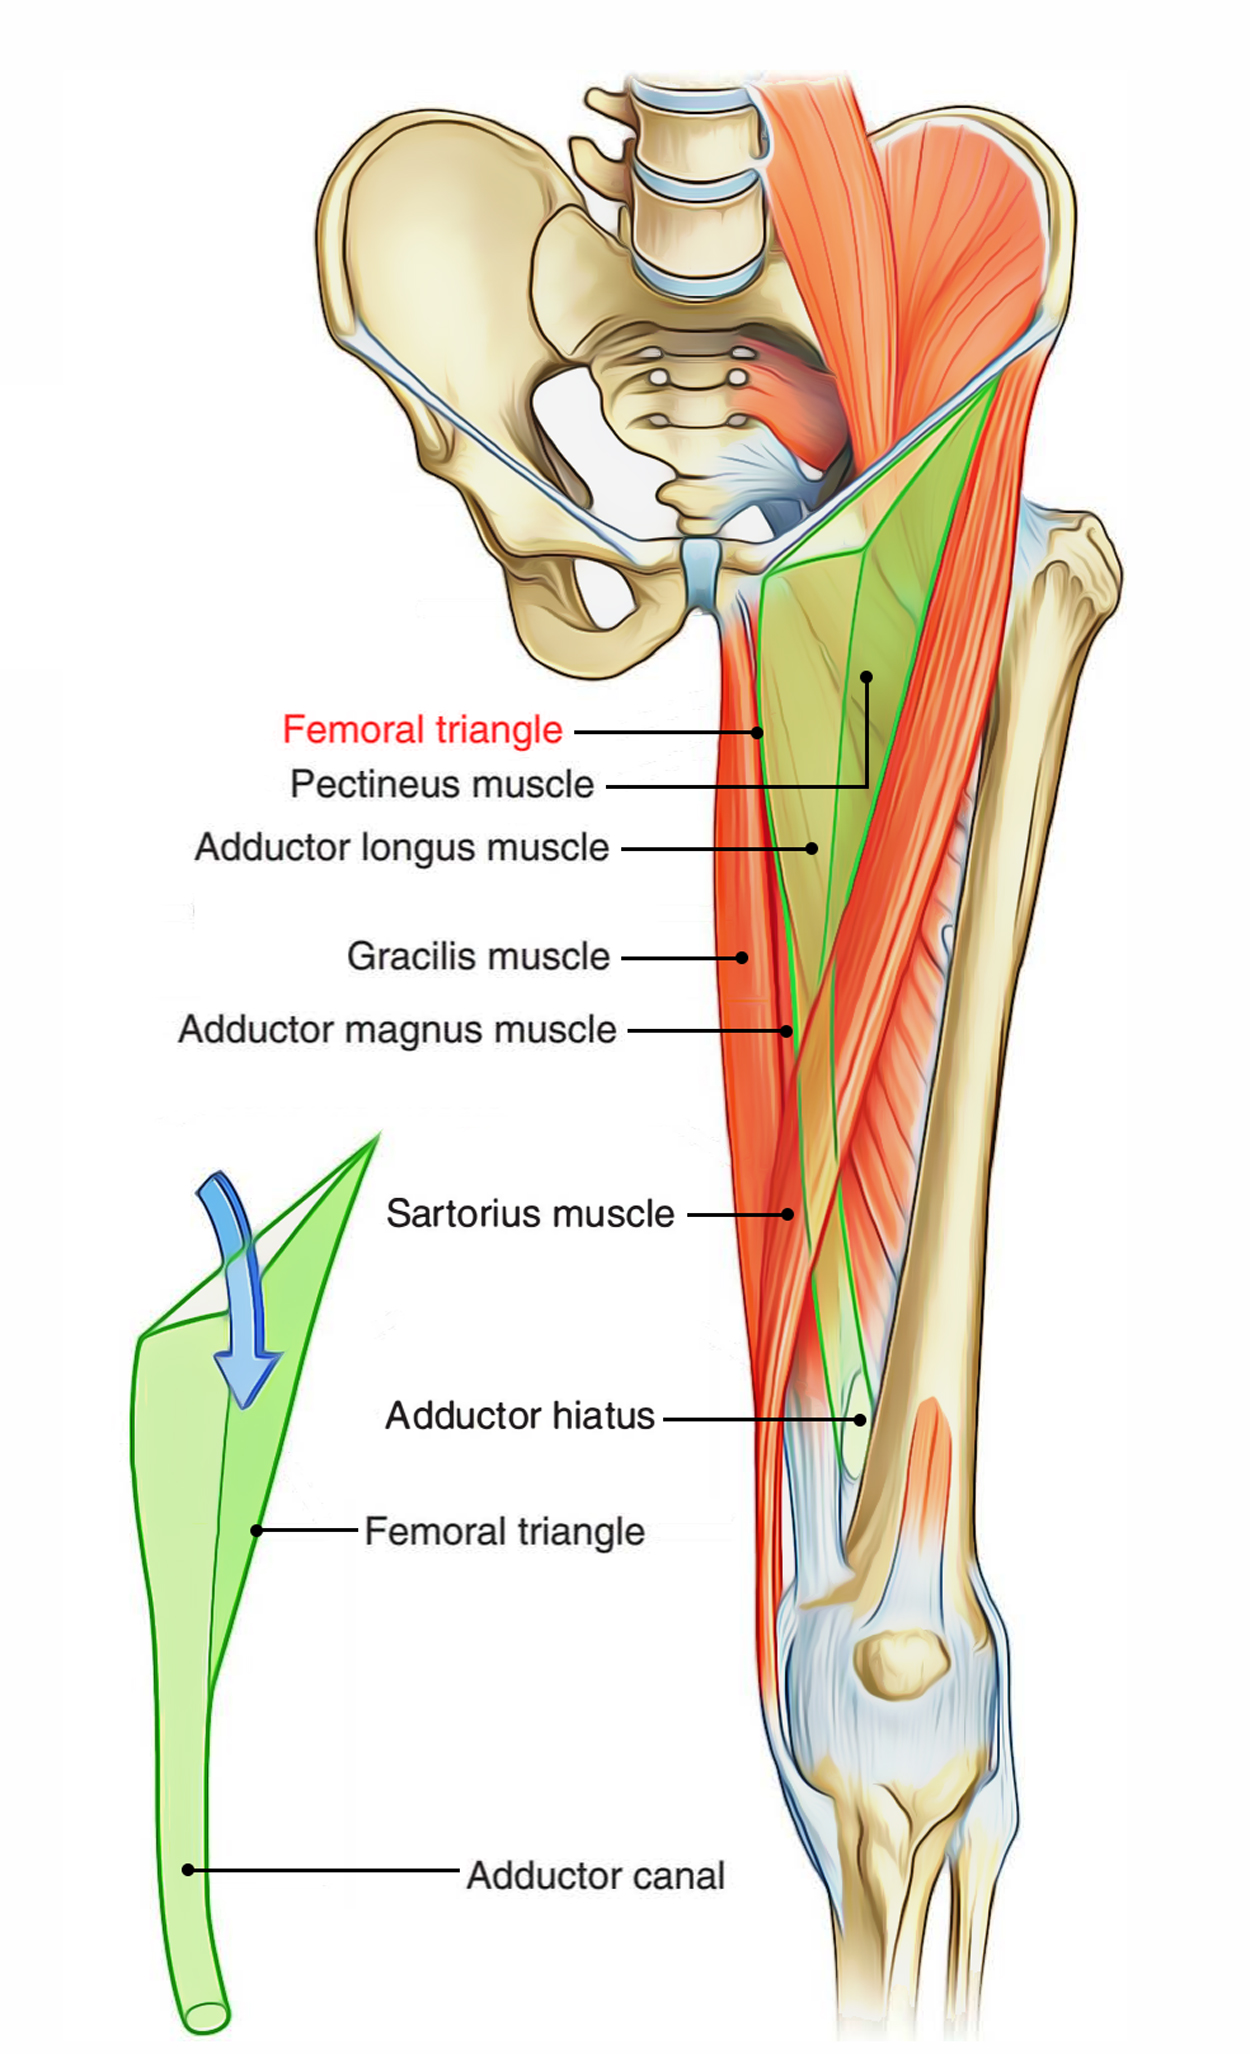 Easy Notes On 【Femoral Triangle】Learn in Just 4 Minutes!